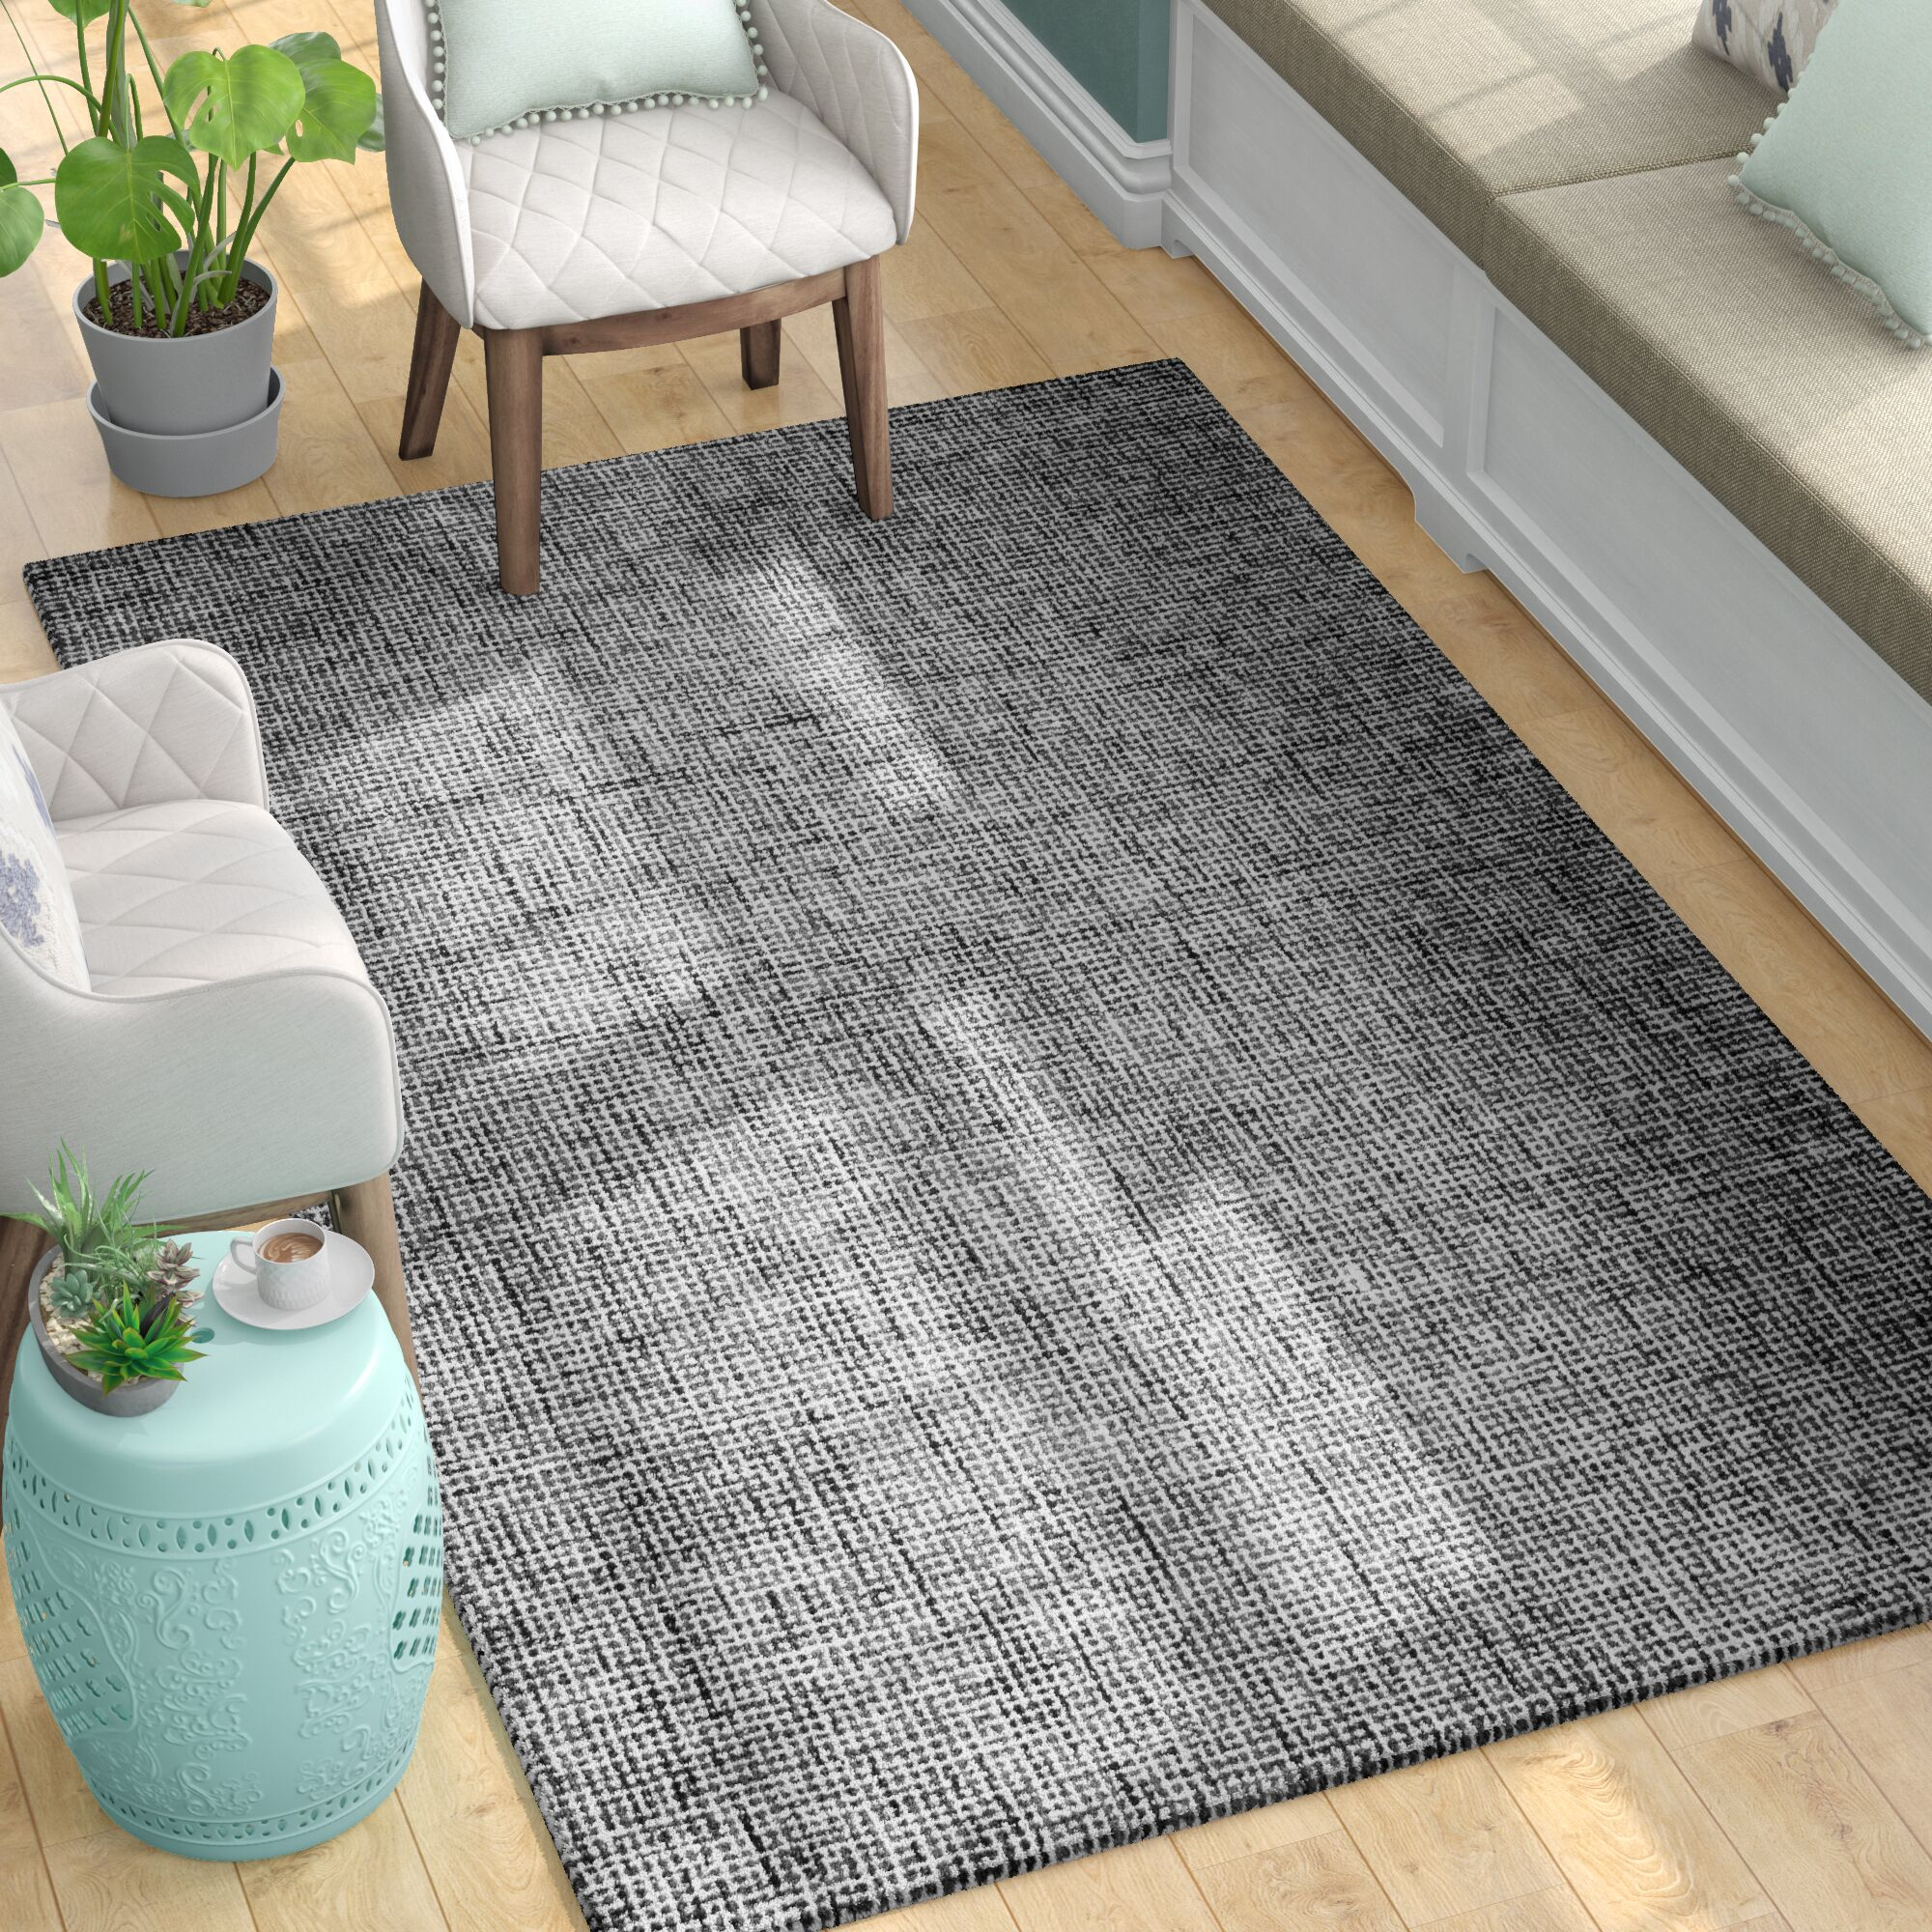 Guildhall Hand-Tufted 100% Wool Black Area Rug Rug Size: Rectangle 8' x 10'